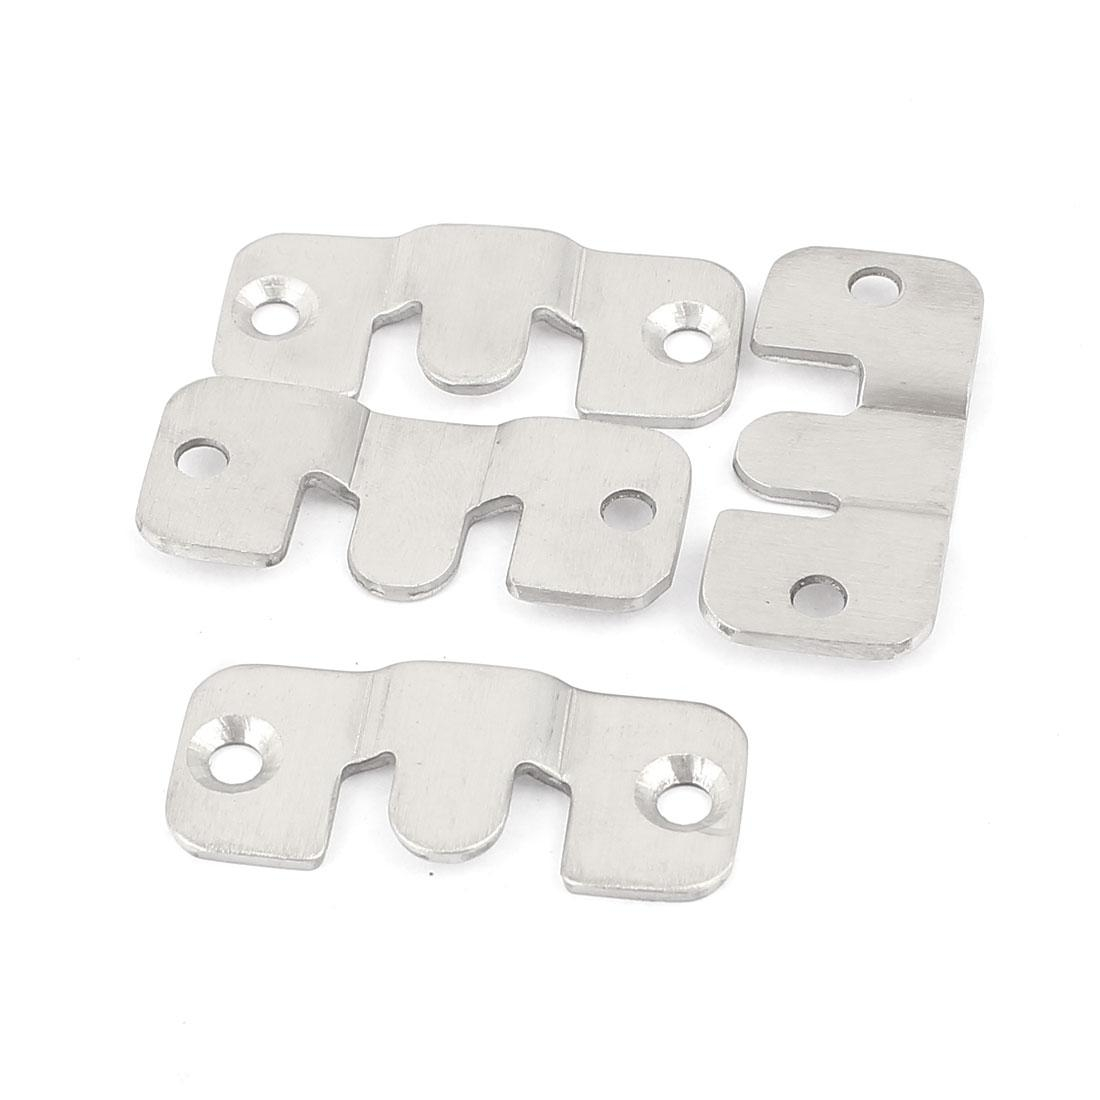 Universal Sectional Interlock Sofa Couch Connector Bracket Set with regard to Sectional Couch Brackets